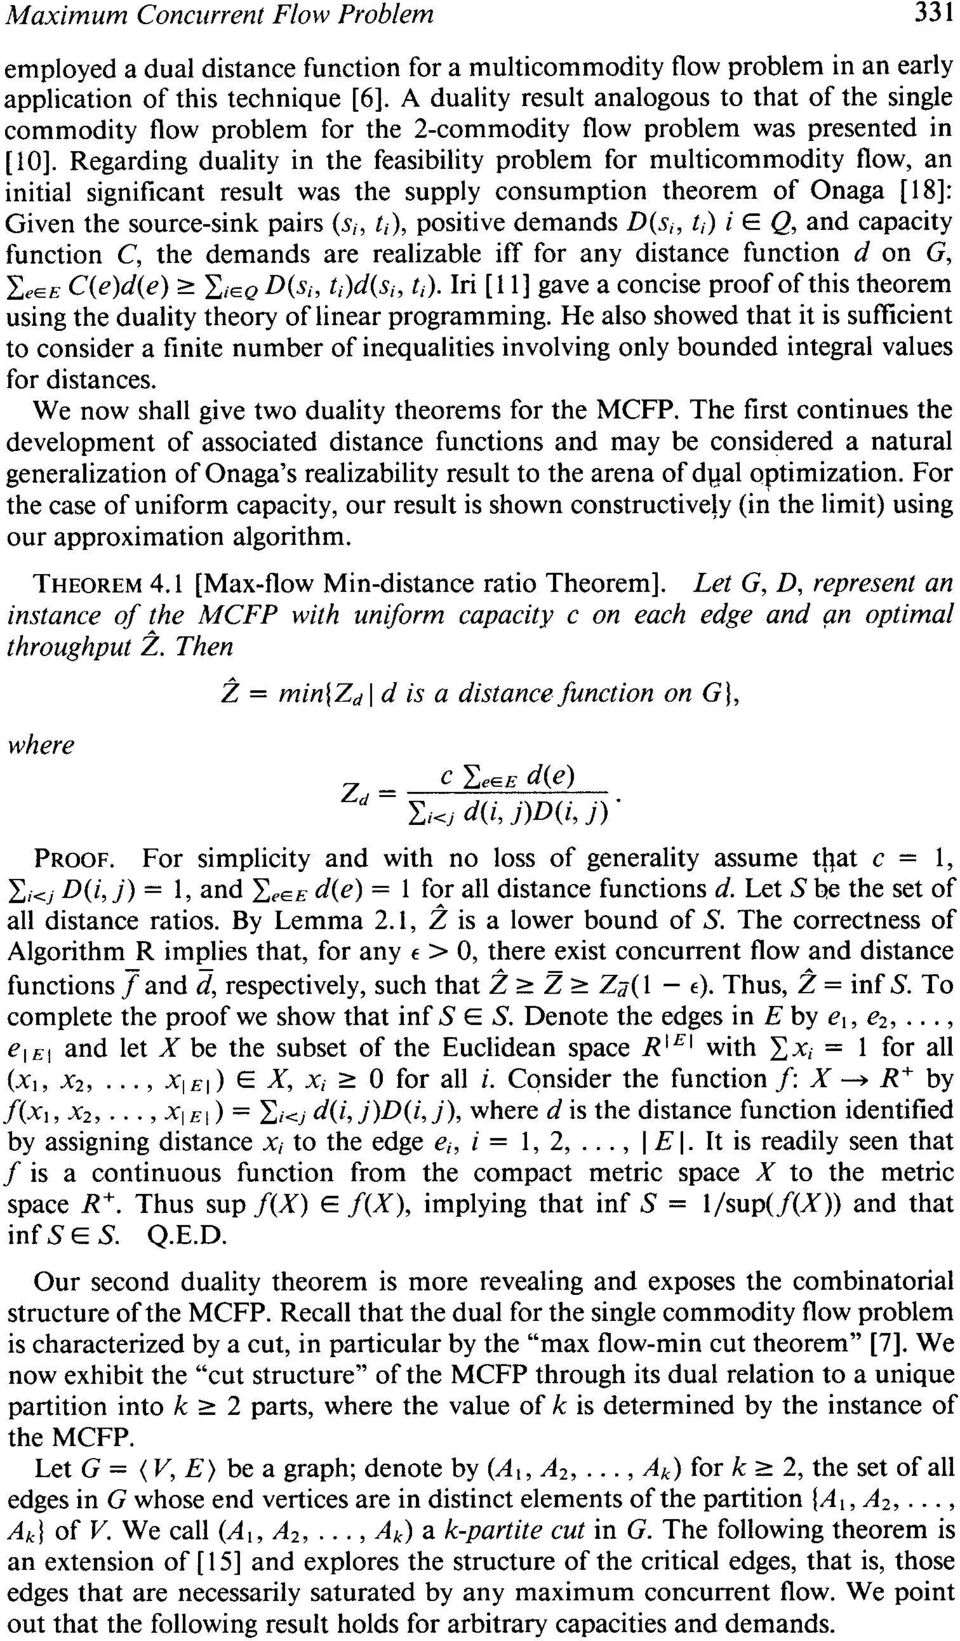 Regarding duality in the feasibility problem for multicommodity flow, an initial significant result was the supply consumption theorem of Onaga [ 181: Given the source-sink pairs (Si, ti), positive